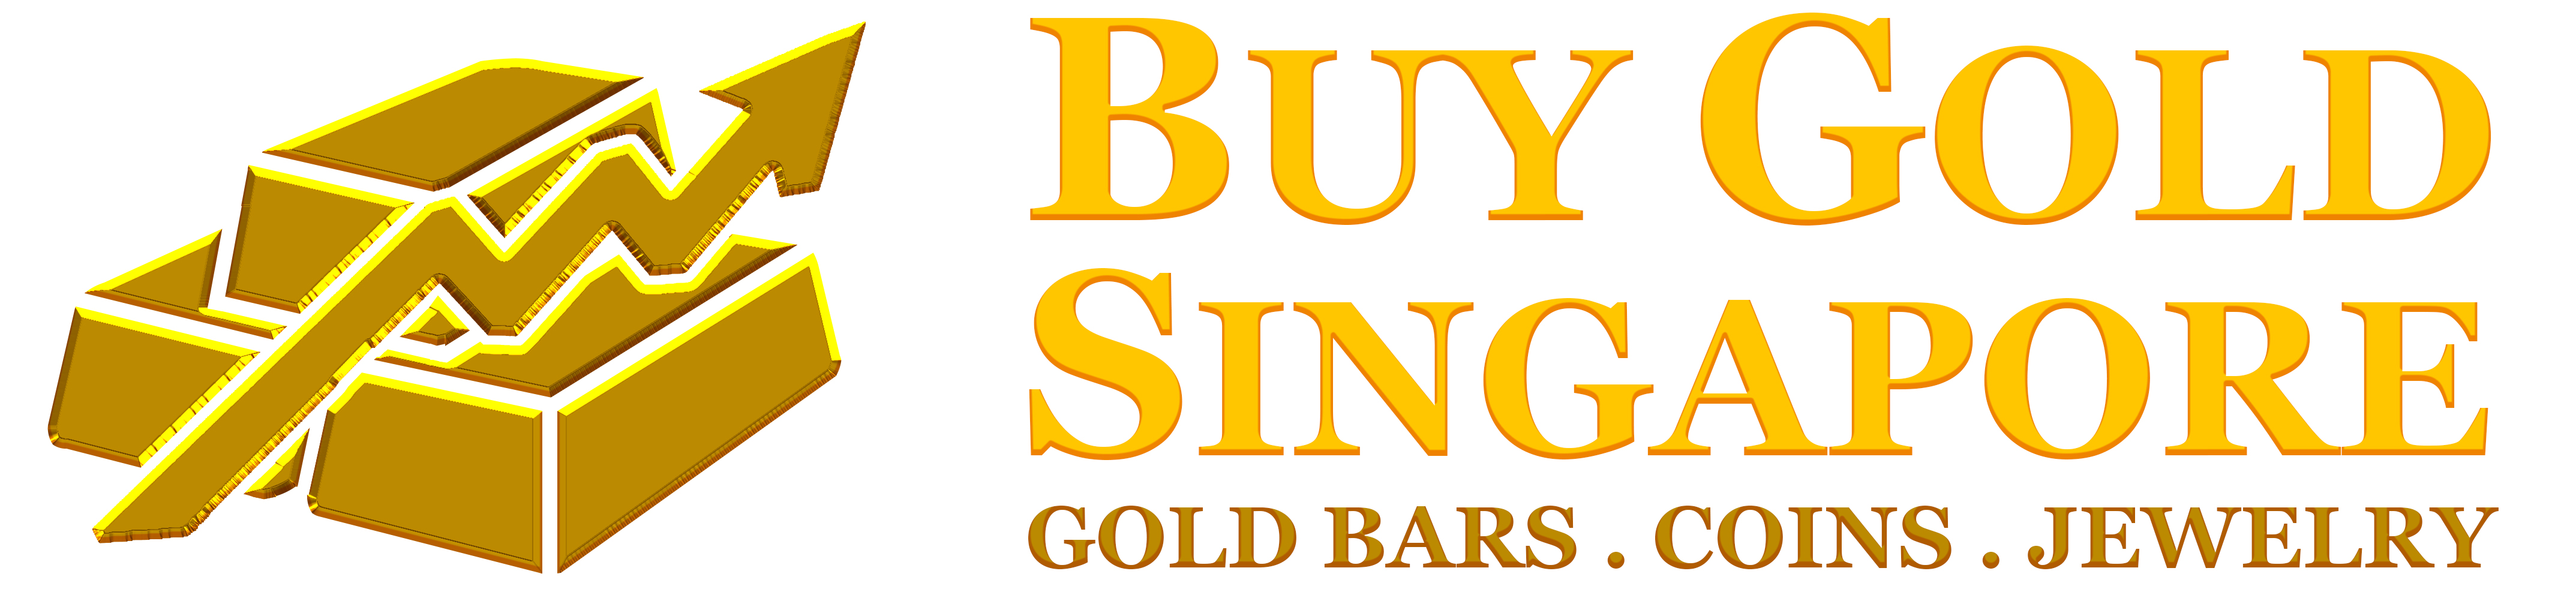 Buy Gold Singapore Brands